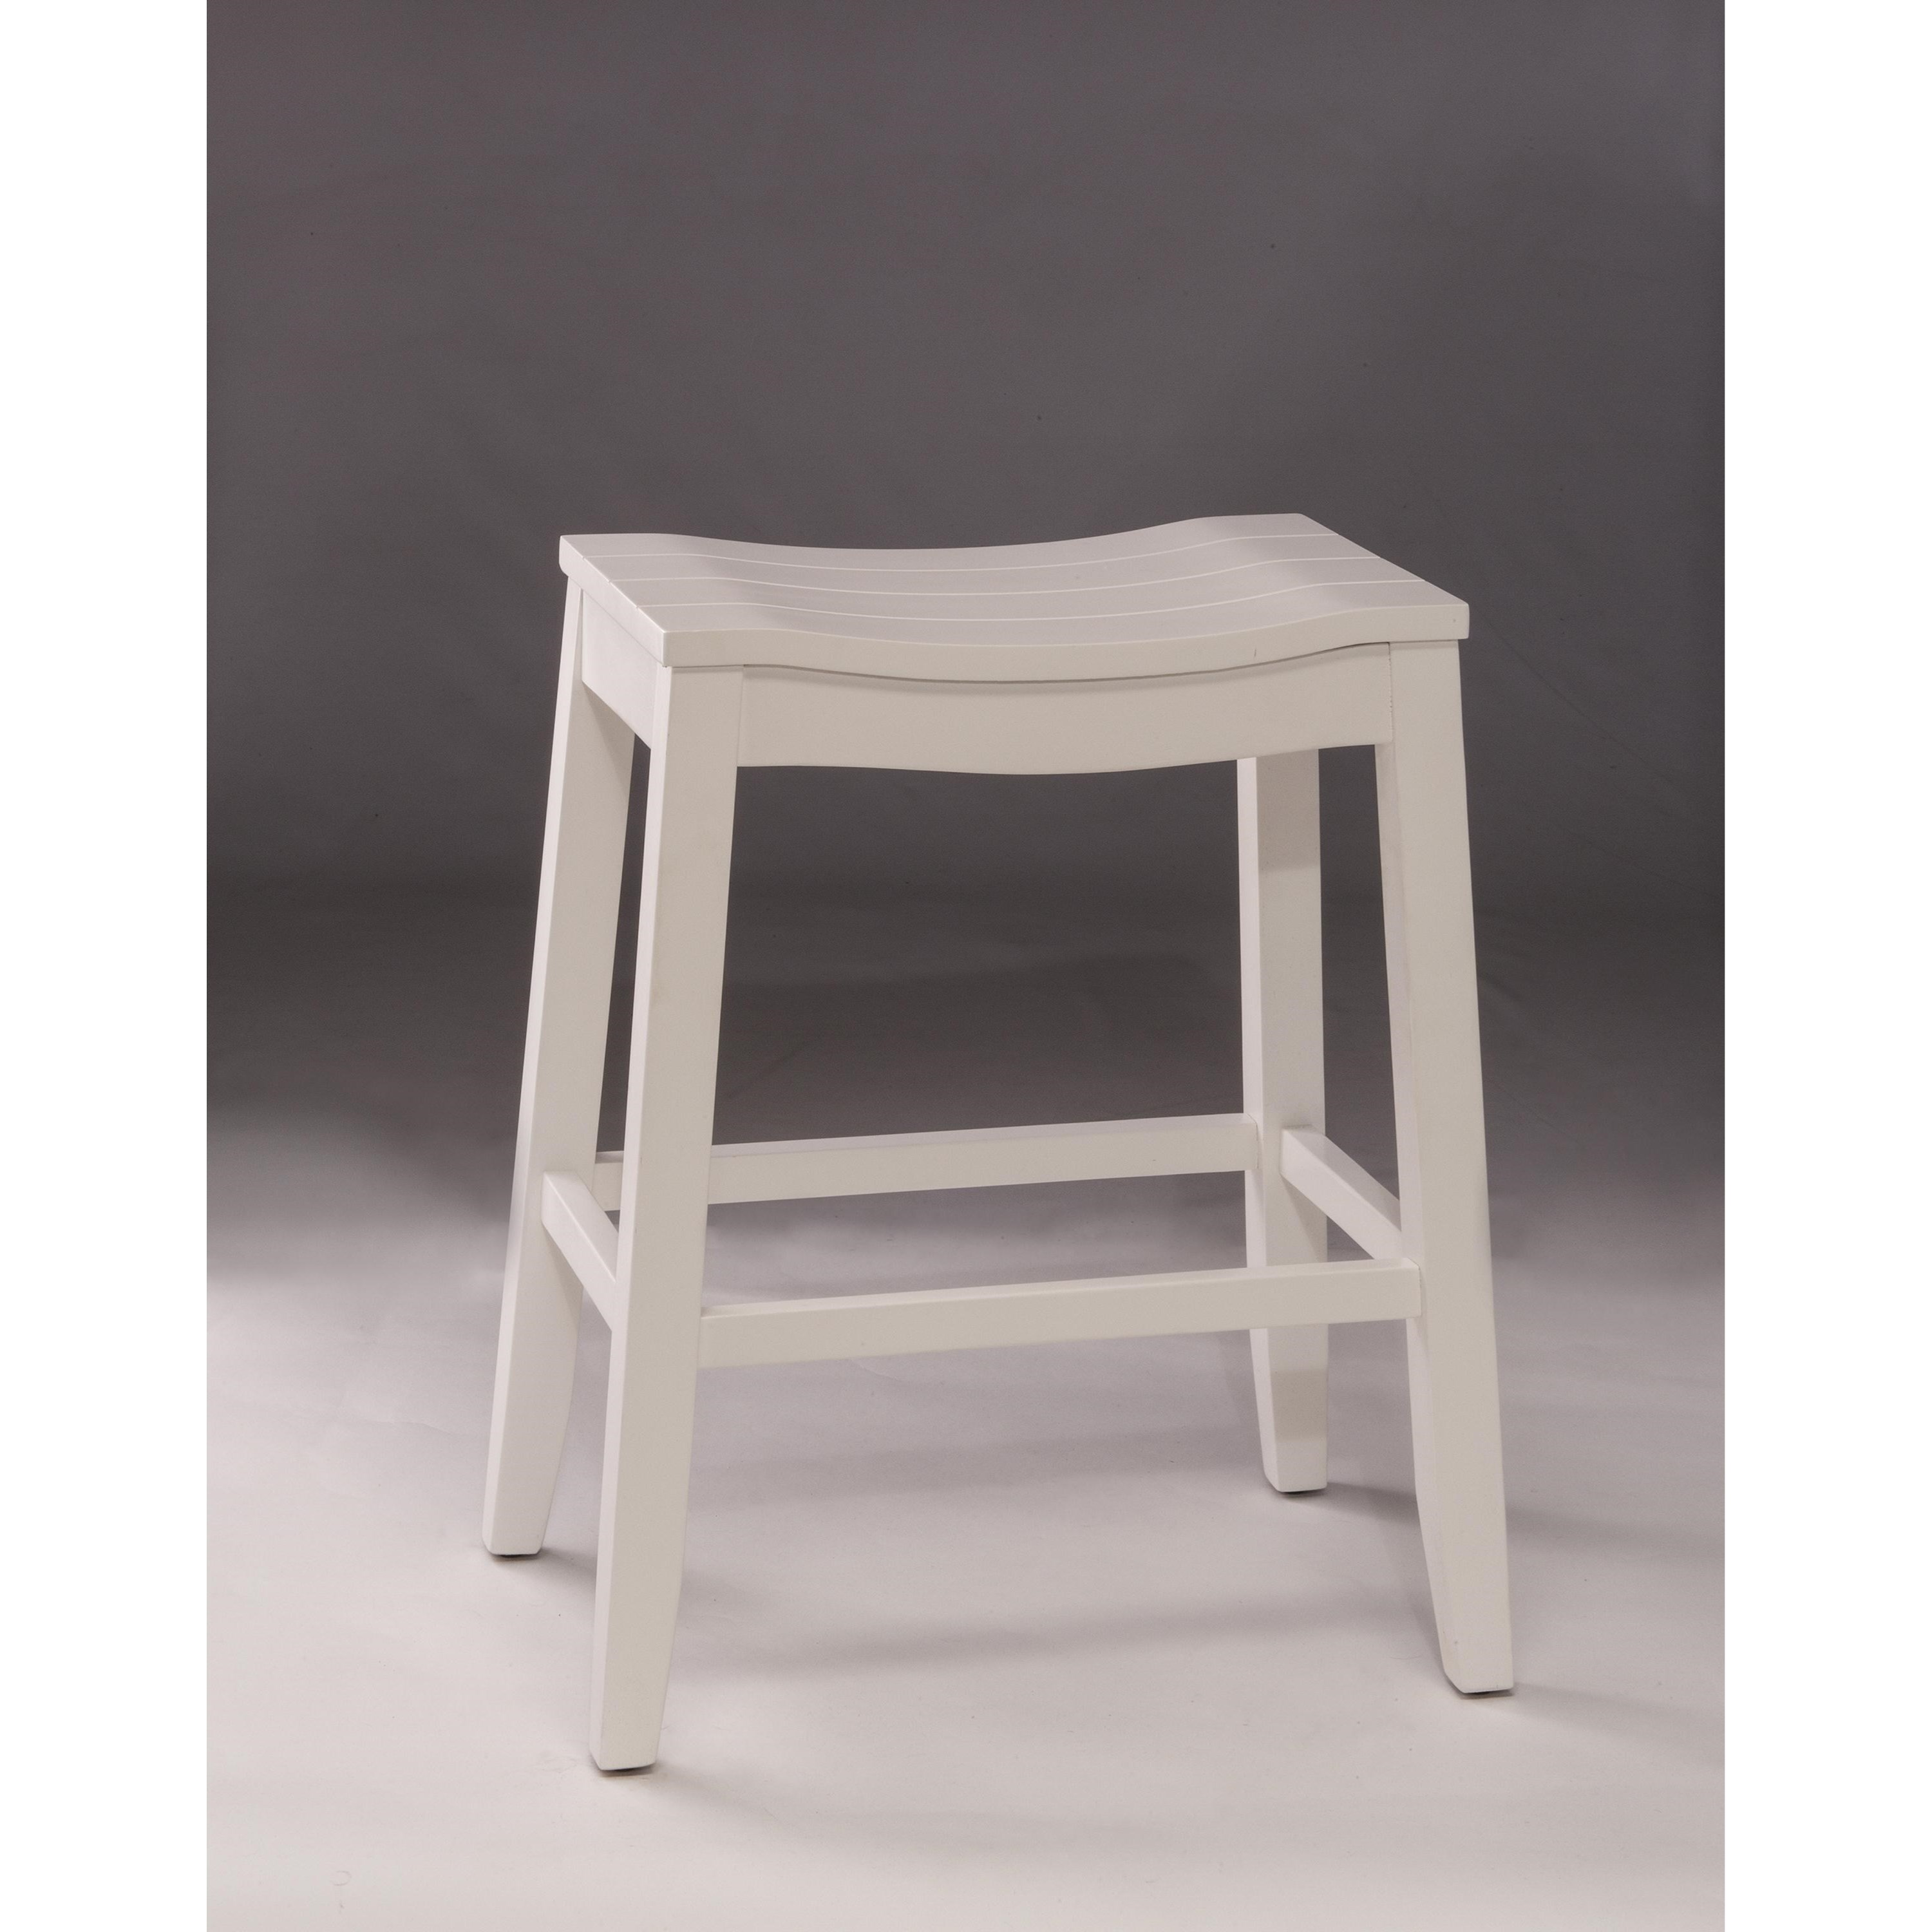 Backless Bar Stools Backless Non-Swivel Bar Stool by Hillsdale at Lindy's Furniture Company